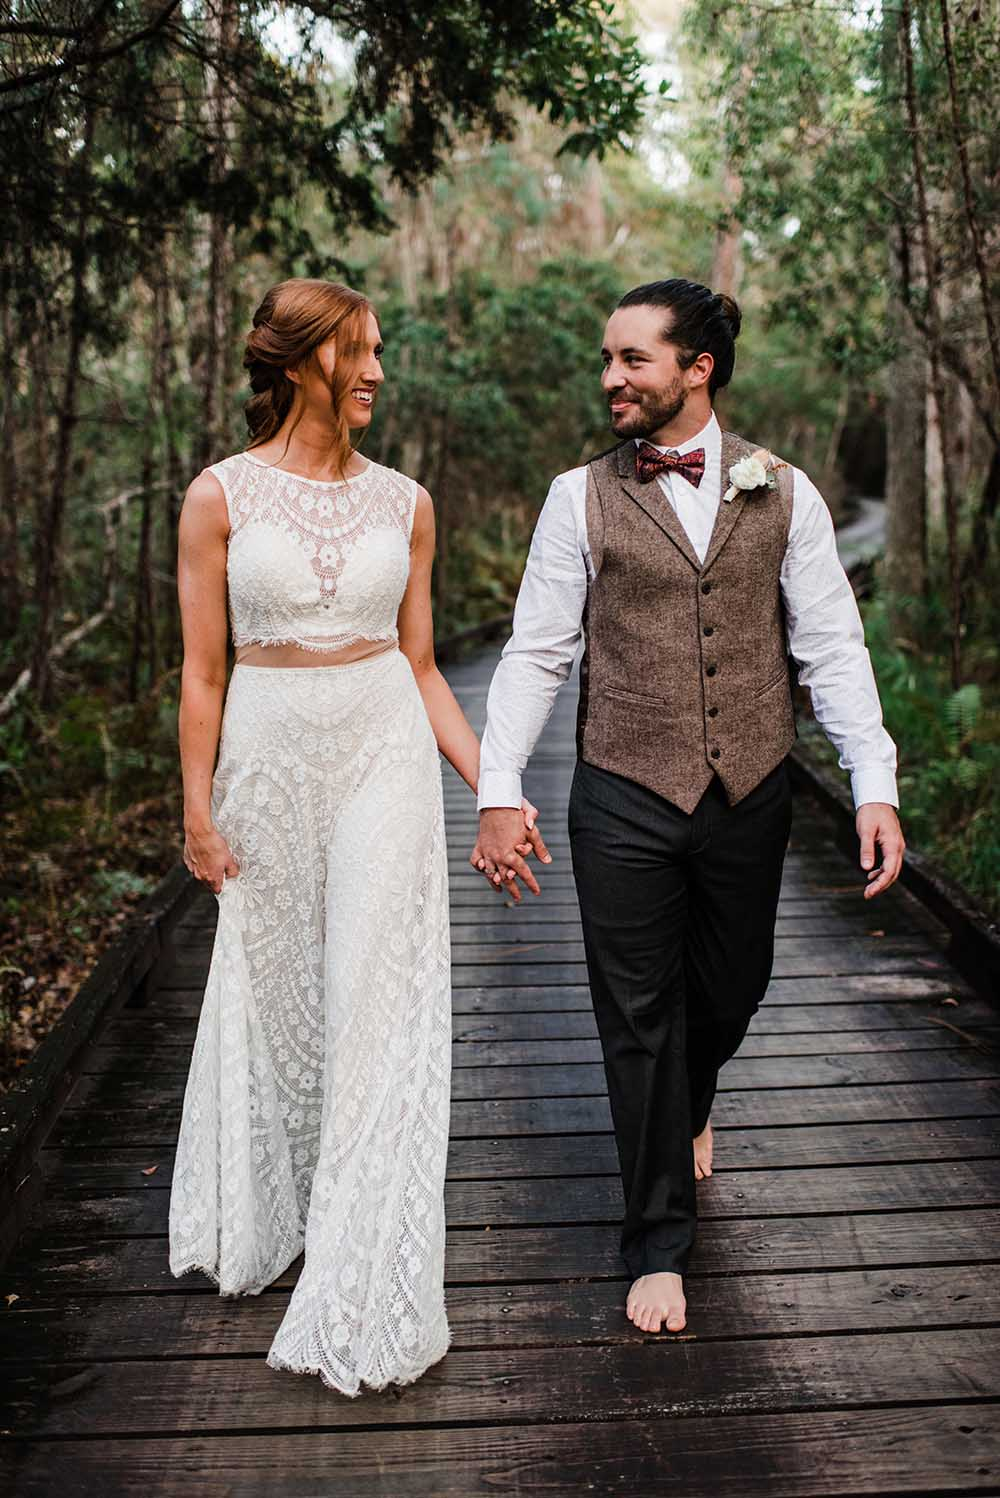 Boho Elopement Wedding Attire | photo by MBM Photography | featured on I Do Y'all